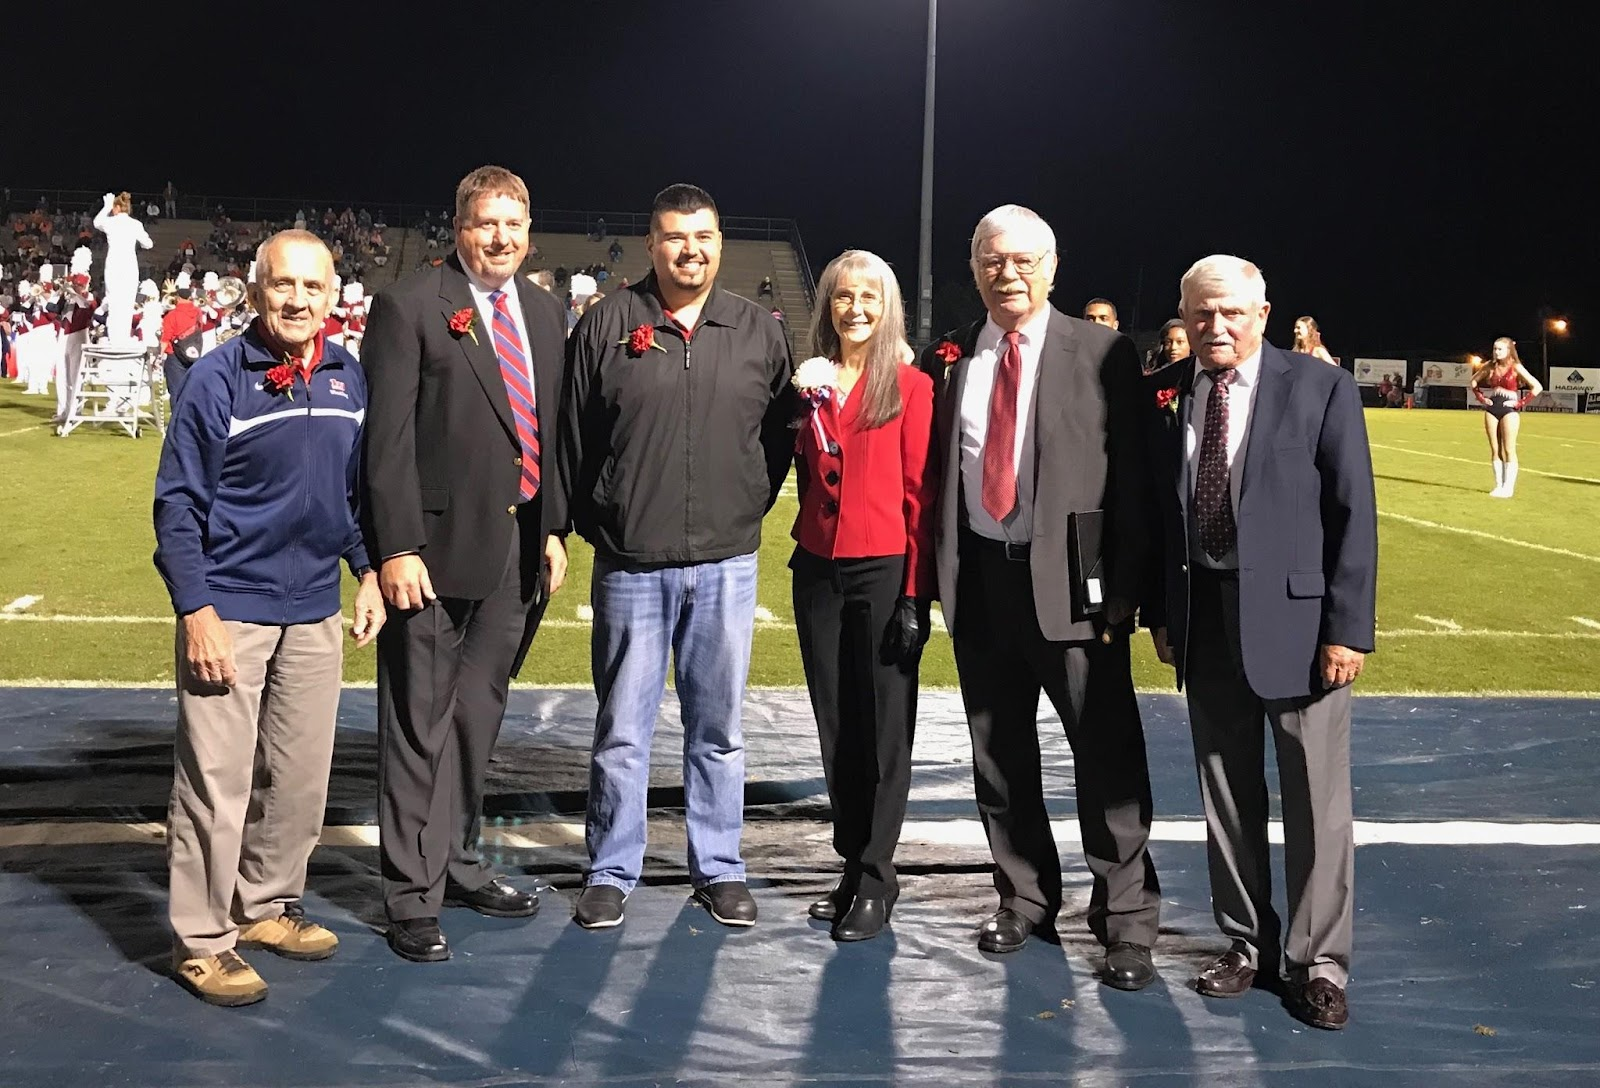 Pictured Left to Right: Dick Clem, Steven Fisher, Erick Ordonez, Sheila Roberts, Doyle Thornton, Steven Woolwine